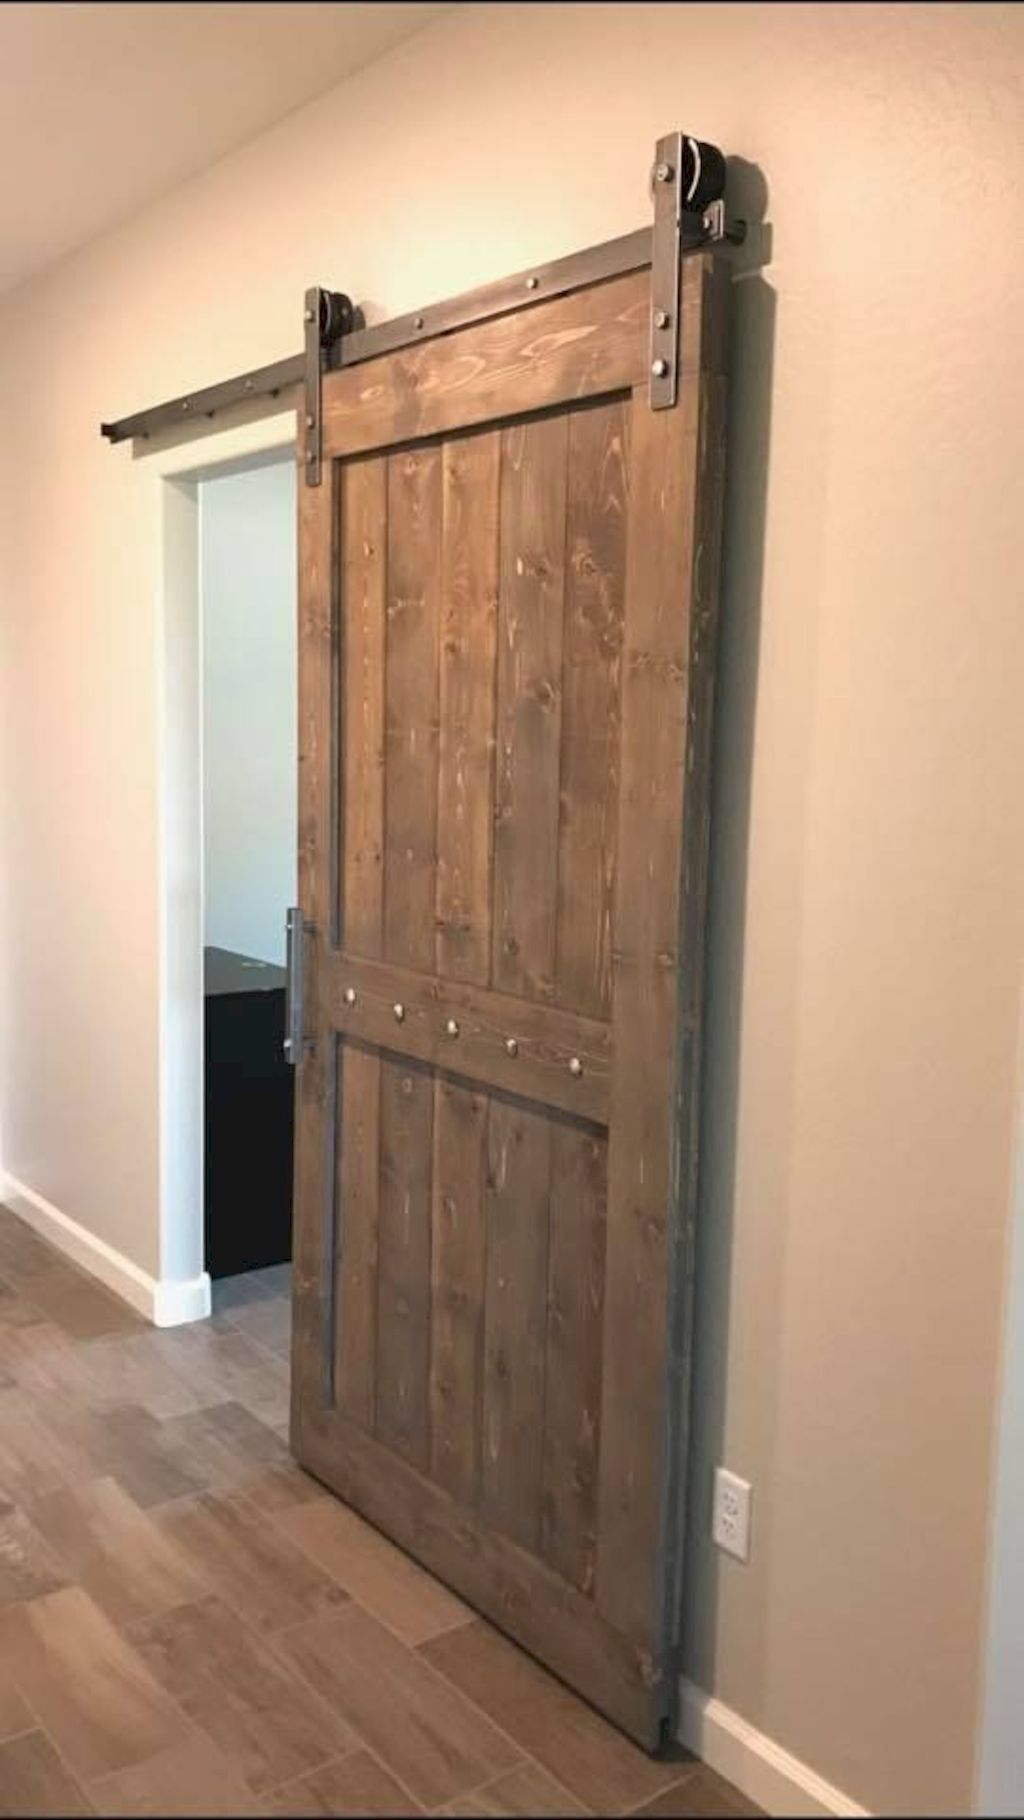 Barn style sliding doors applied as bedroom doors showing a rustic accent in the modern country homes Image 33